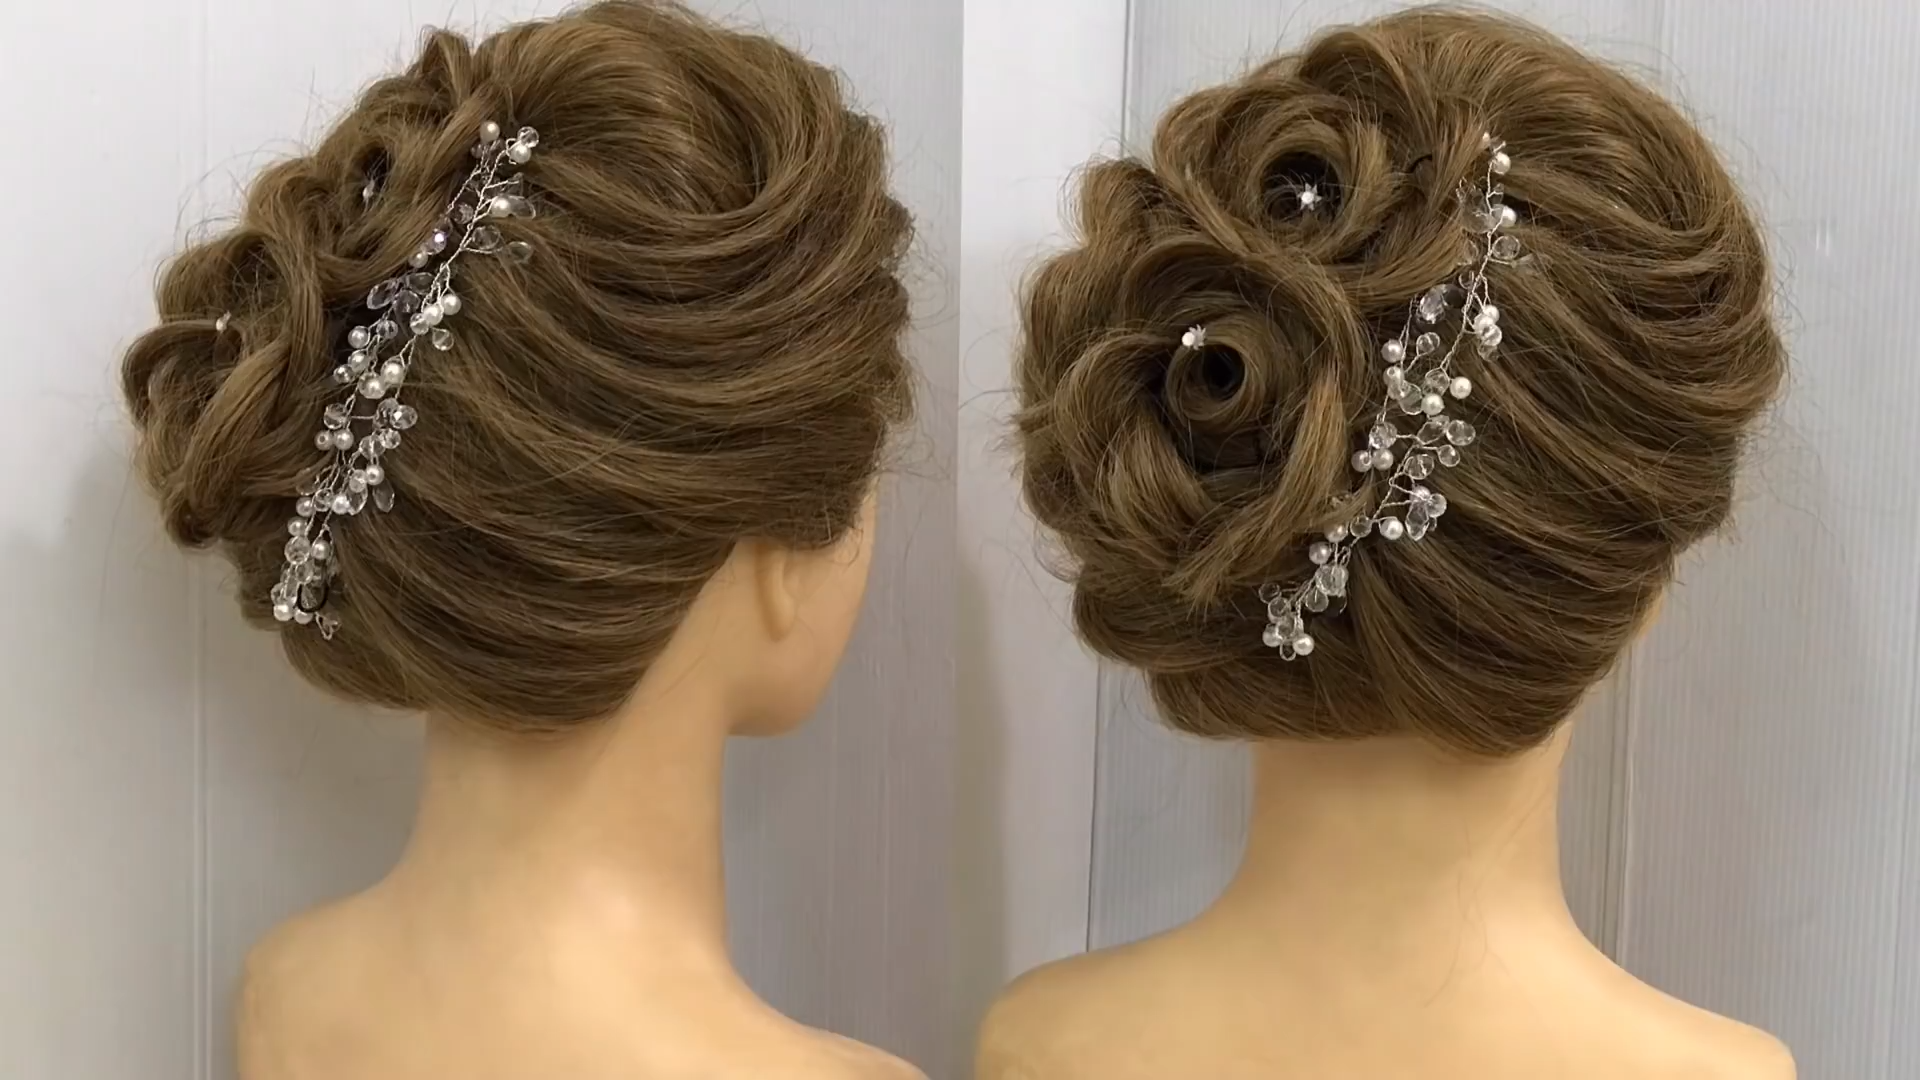 Awesome Hairstyle For Wedding Or Party Beautiful Hairstyles Wedding Hairstyles Awesome Ha In 2020 Wedding Hairstyles Videos Cool Hairstyles Hair Styles